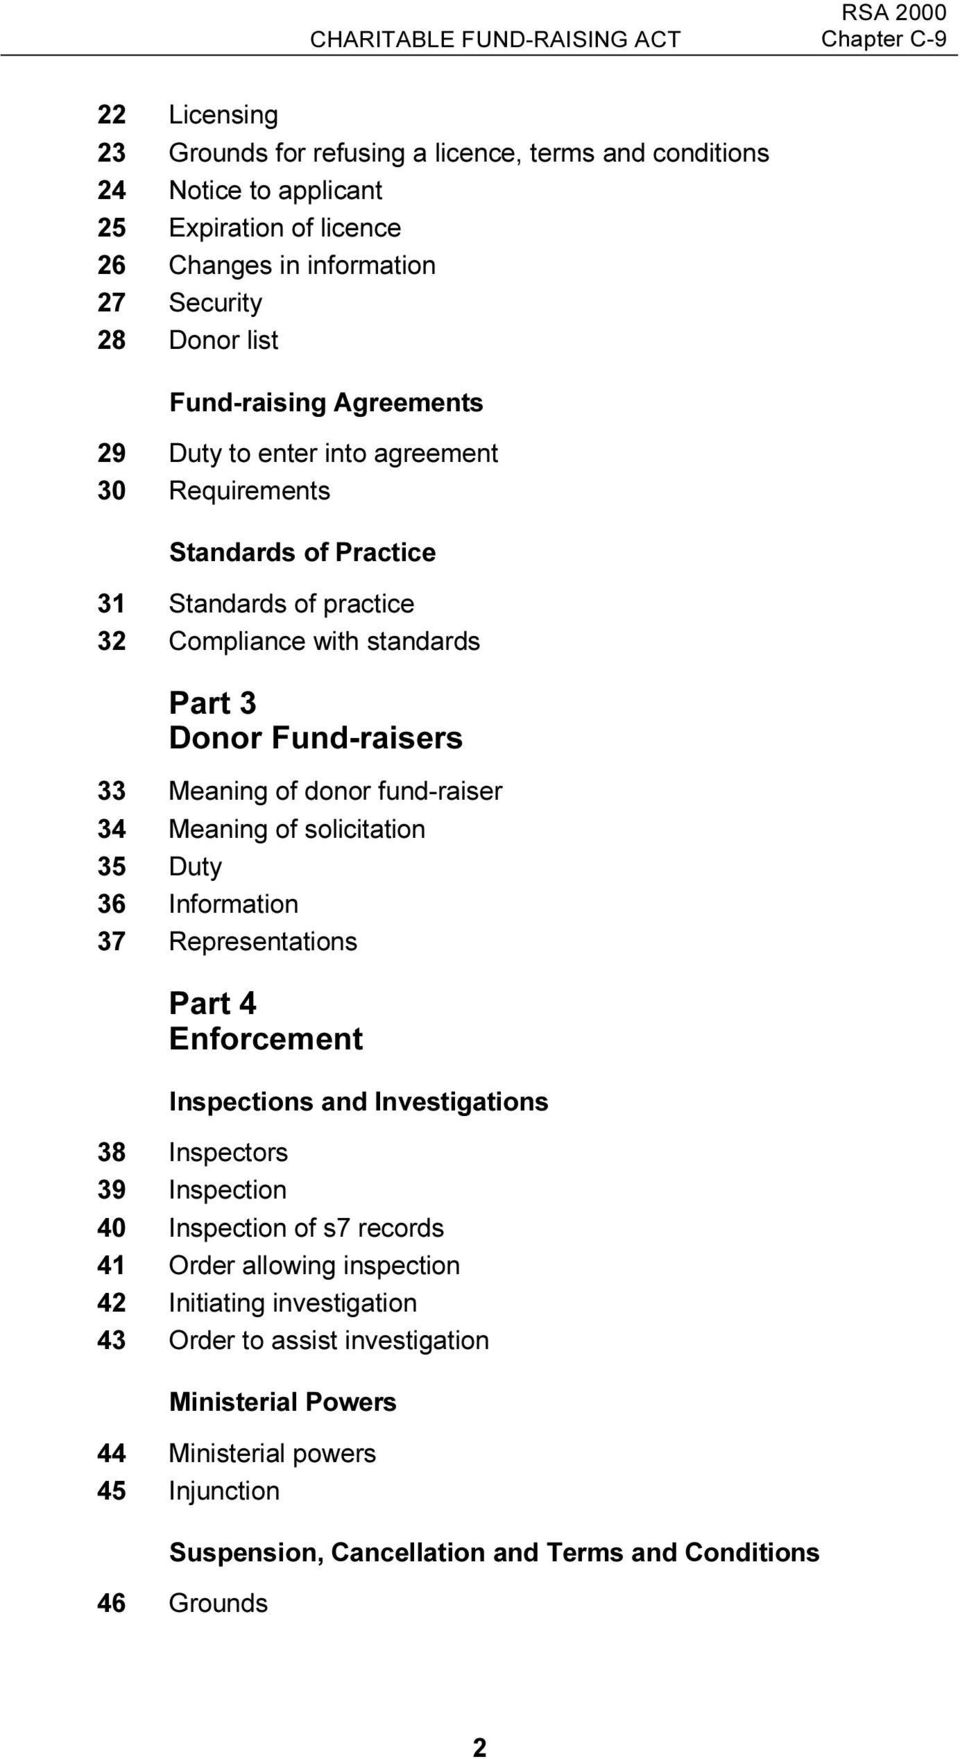 donor fund-raiser 34 Meaning of solicitation 35 Duty 36 Information 37 Representations Part 4 Enforcement Inspections and Investigations 38 Inspectors 39 Inspection 40 Inspection of s7 records 41